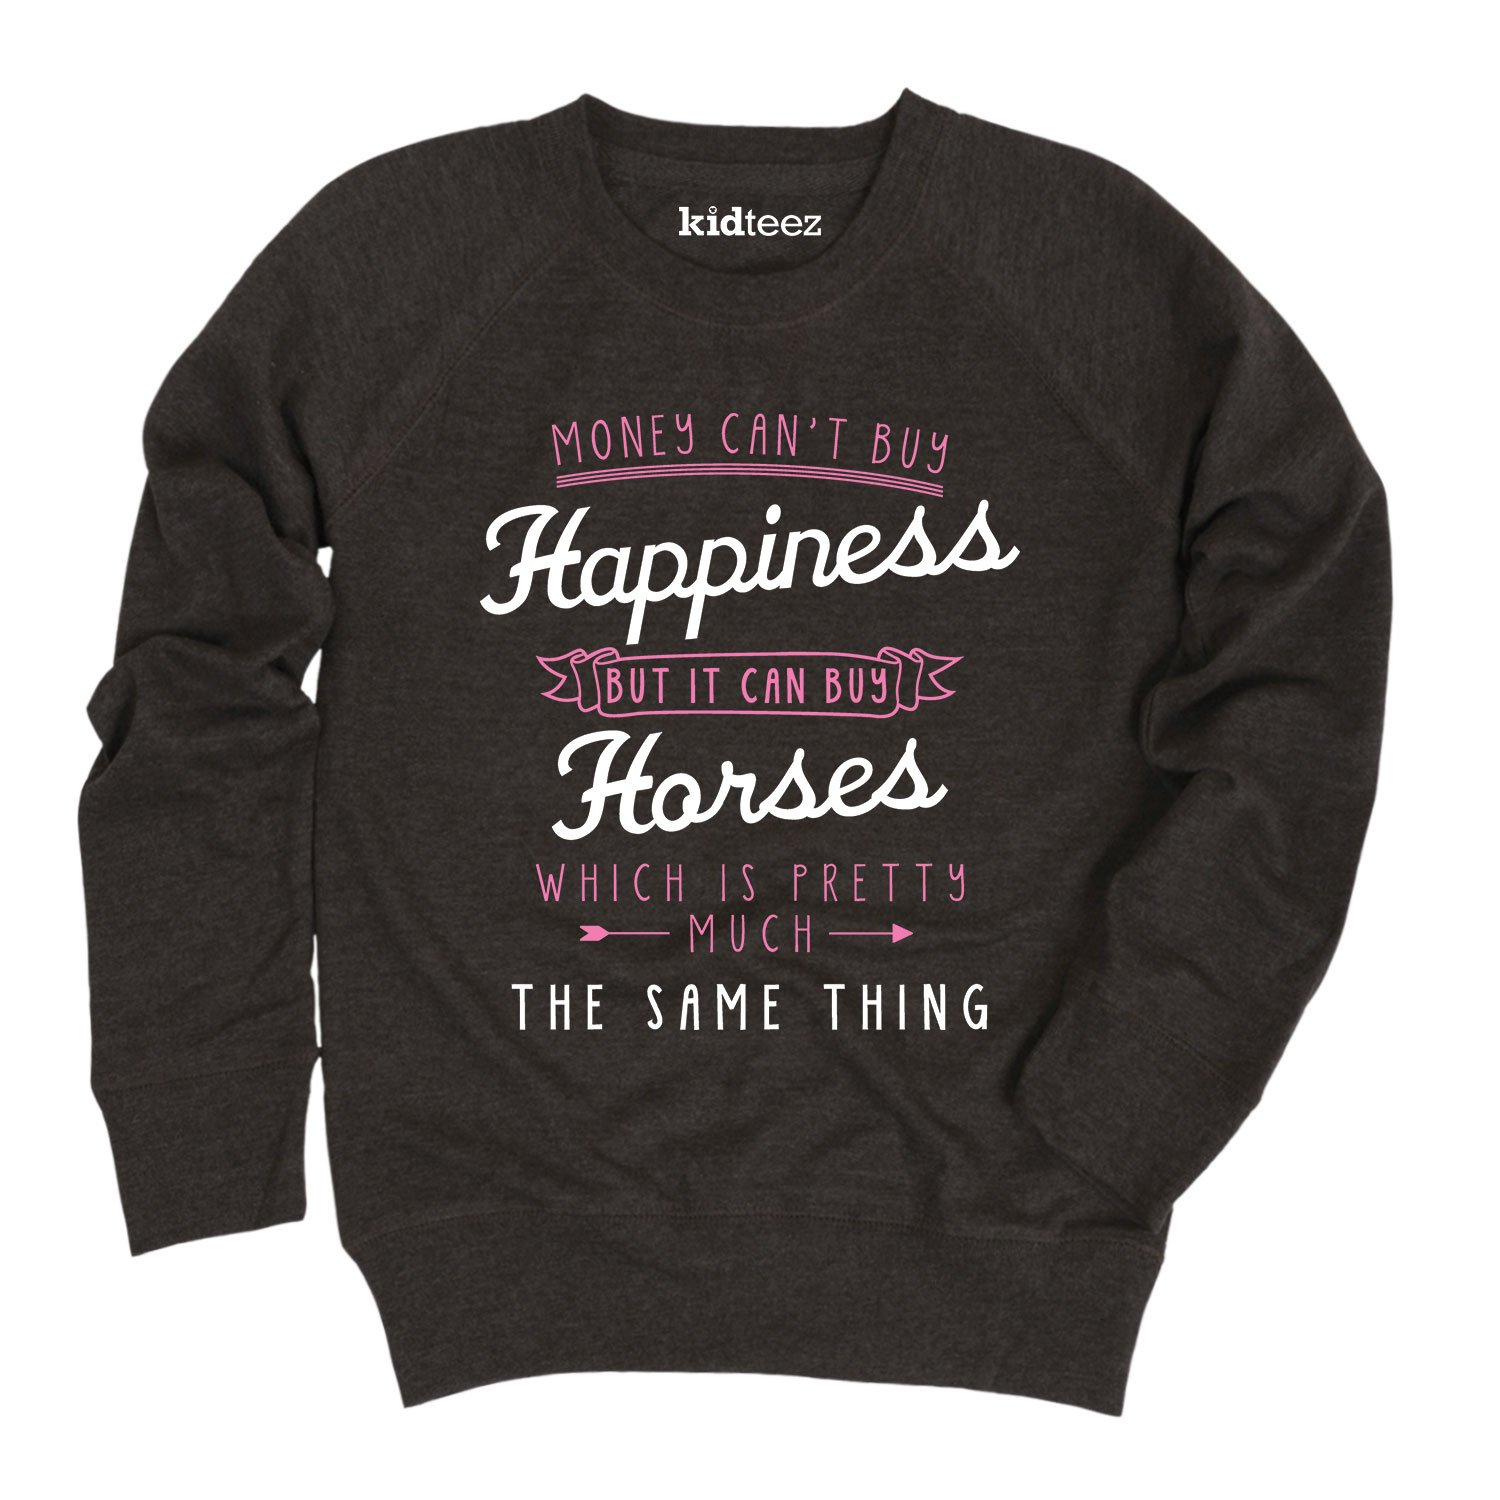 Air Waves Happiness Horses-Youth Girls Slouchy Pullover